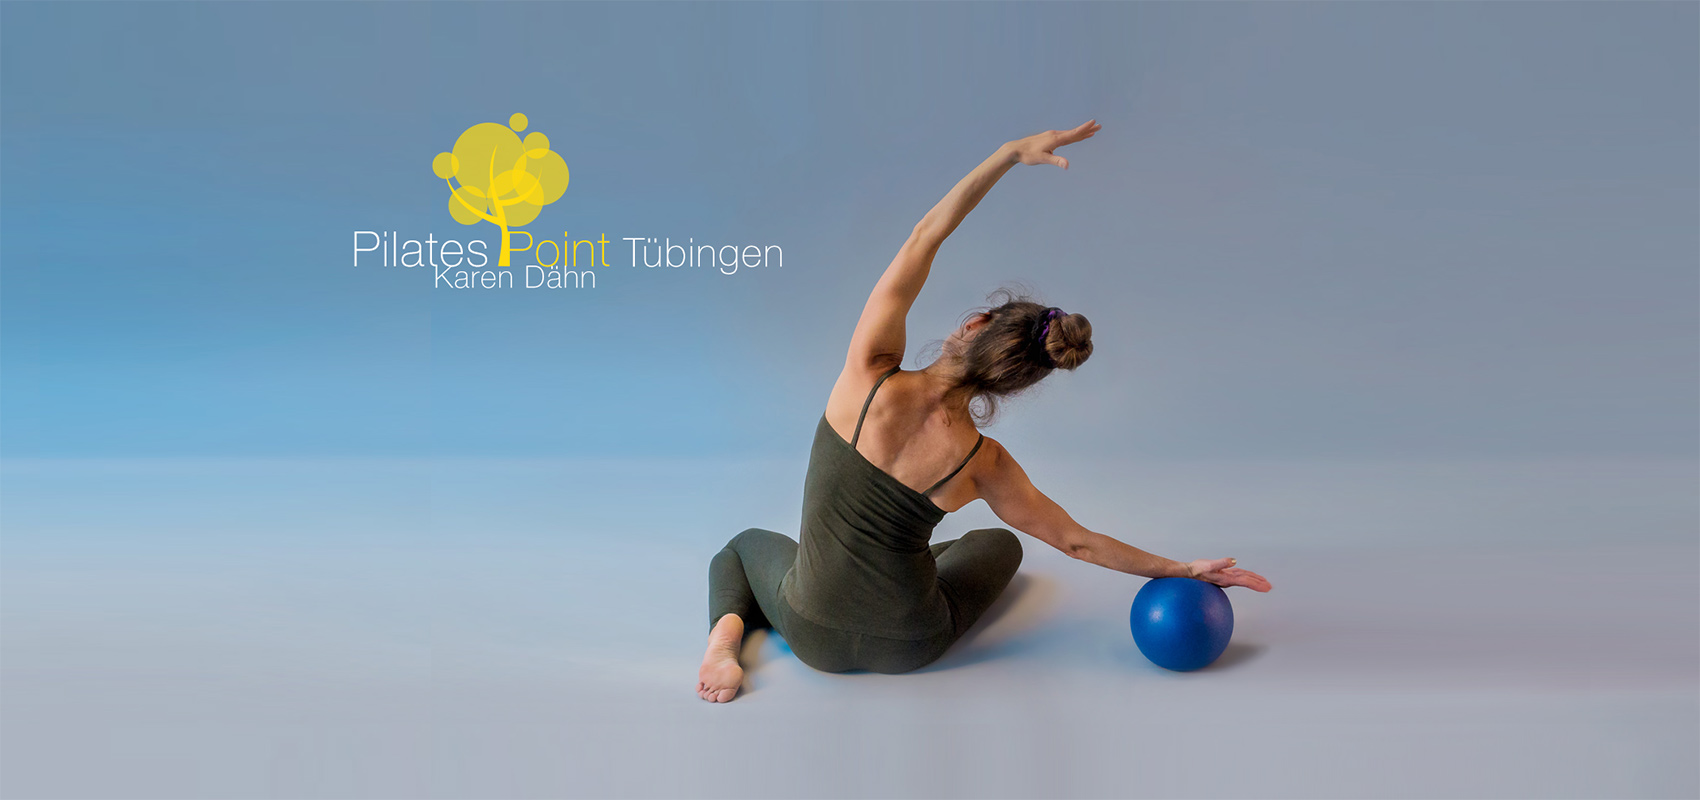 Pilates-Point-Tübingen, Karen Dähn